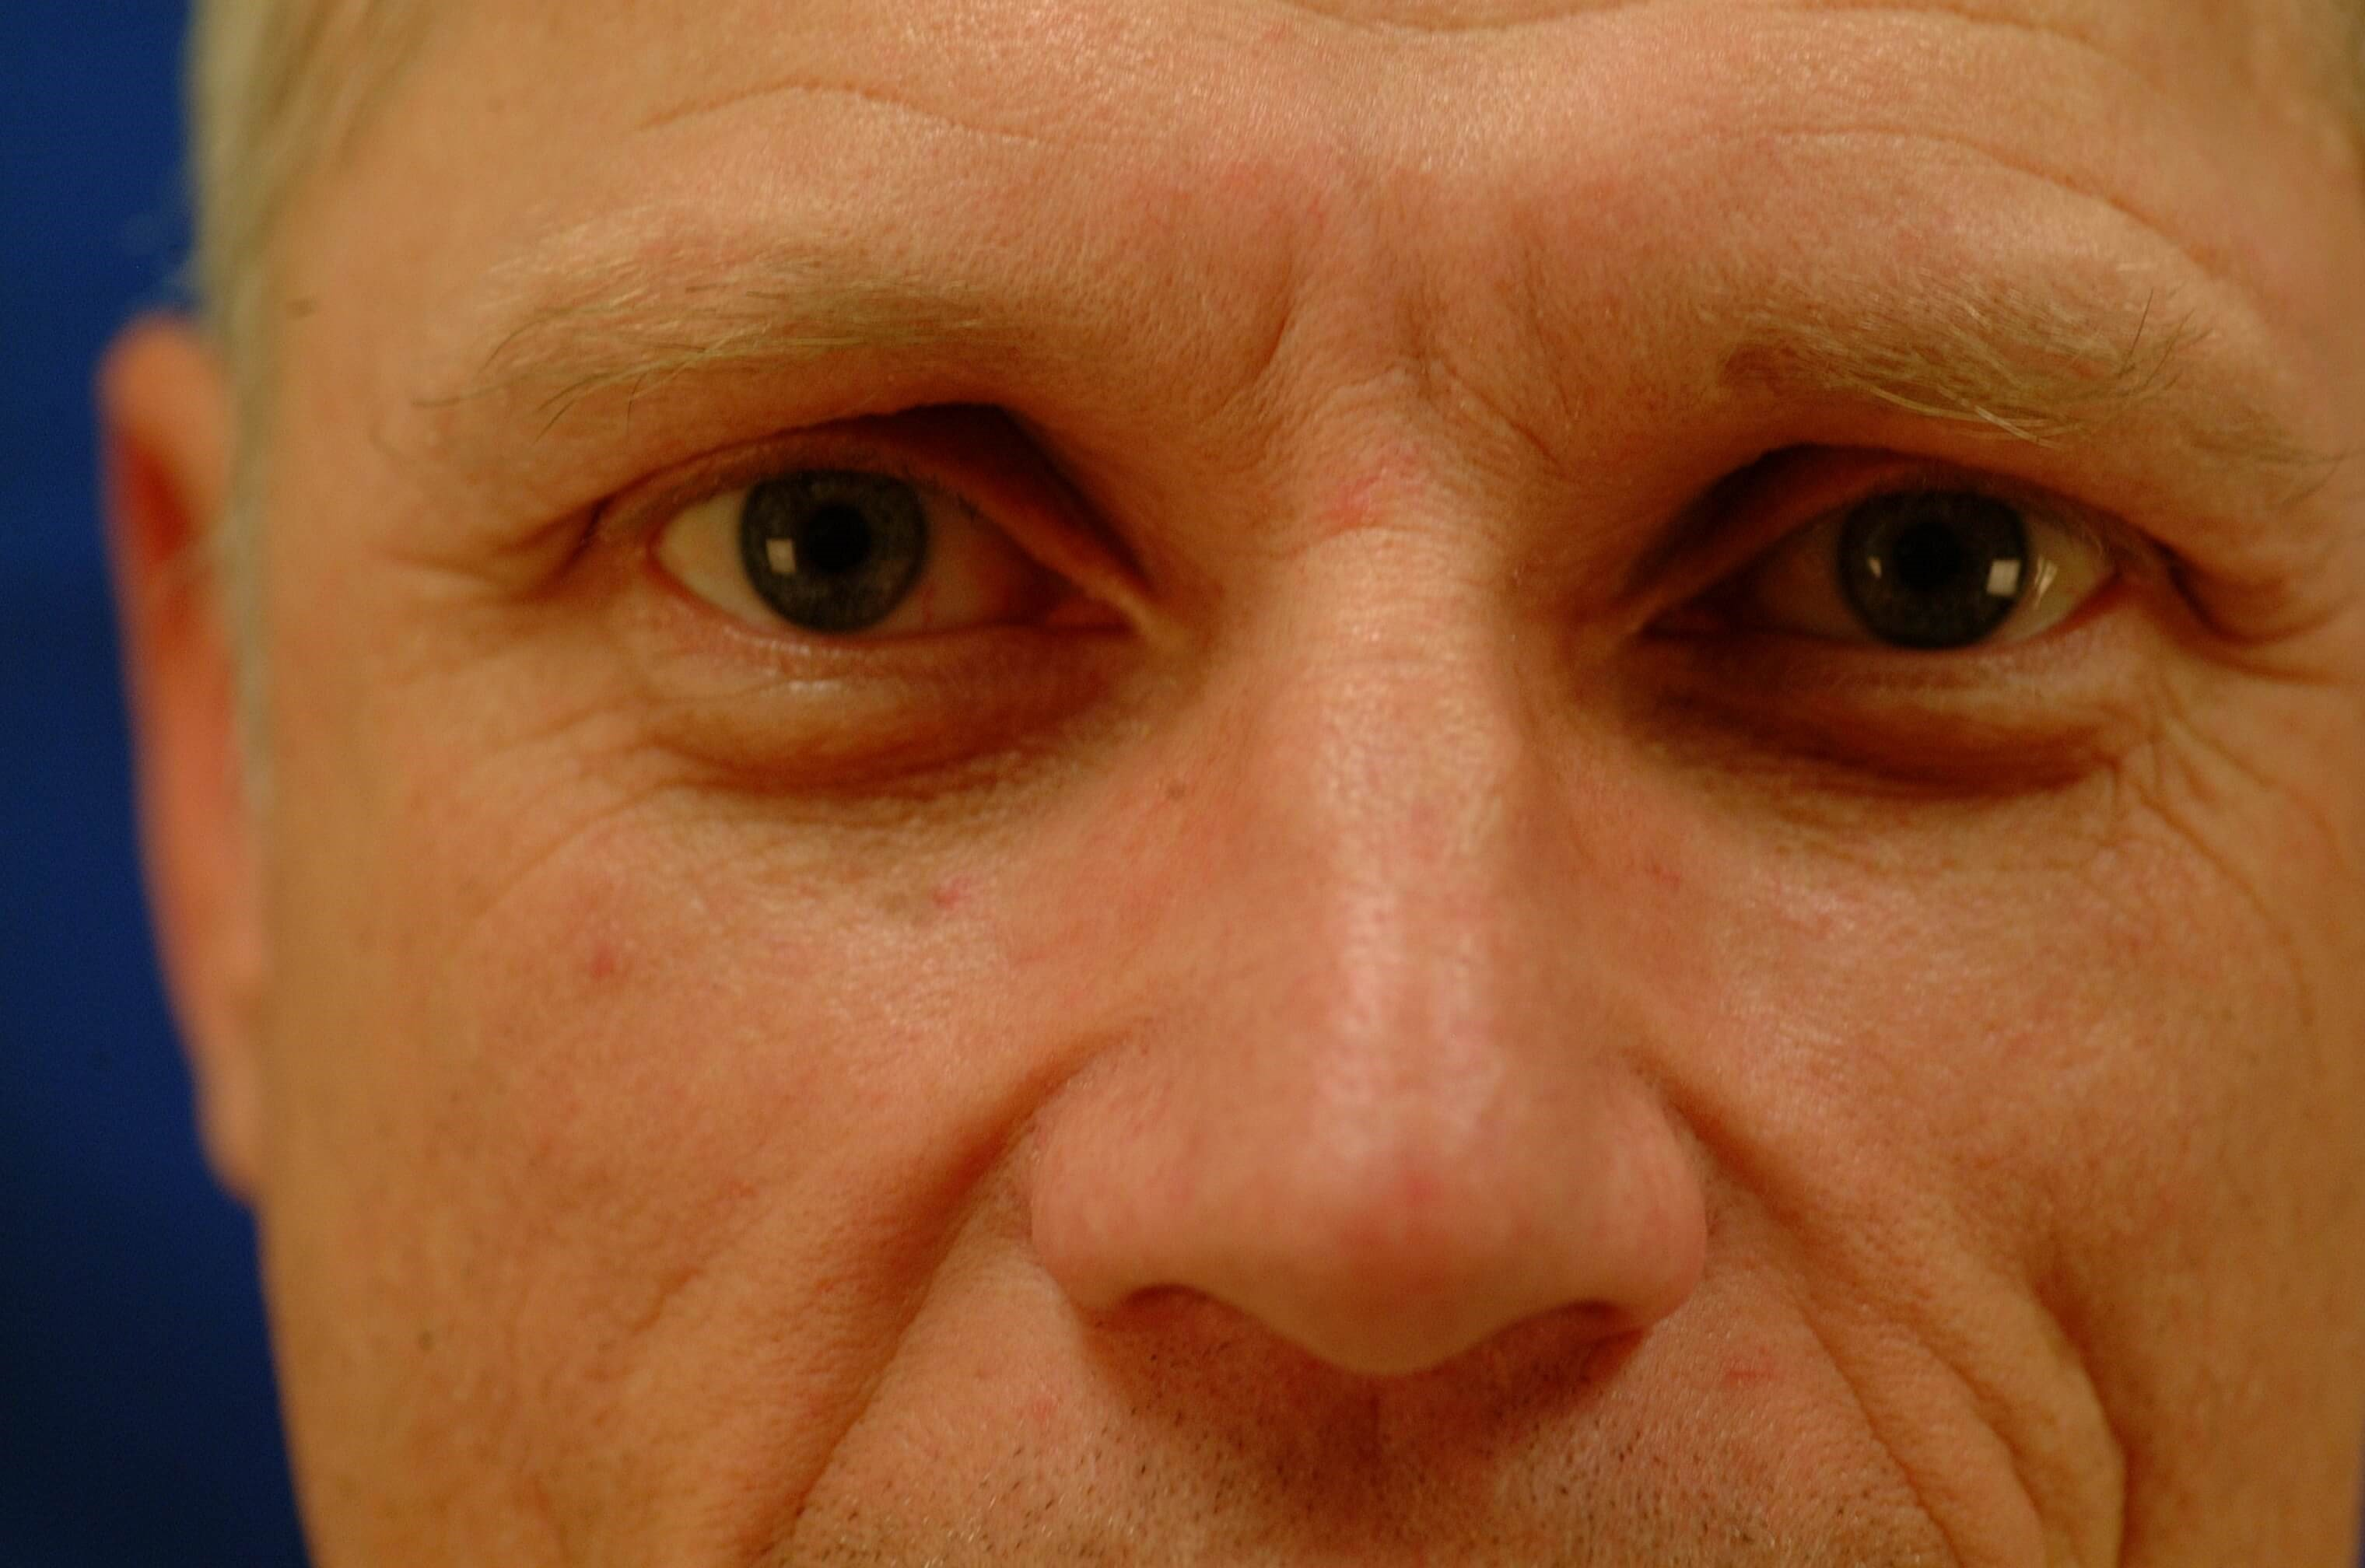 Newport Beach Blepharoplasty Before